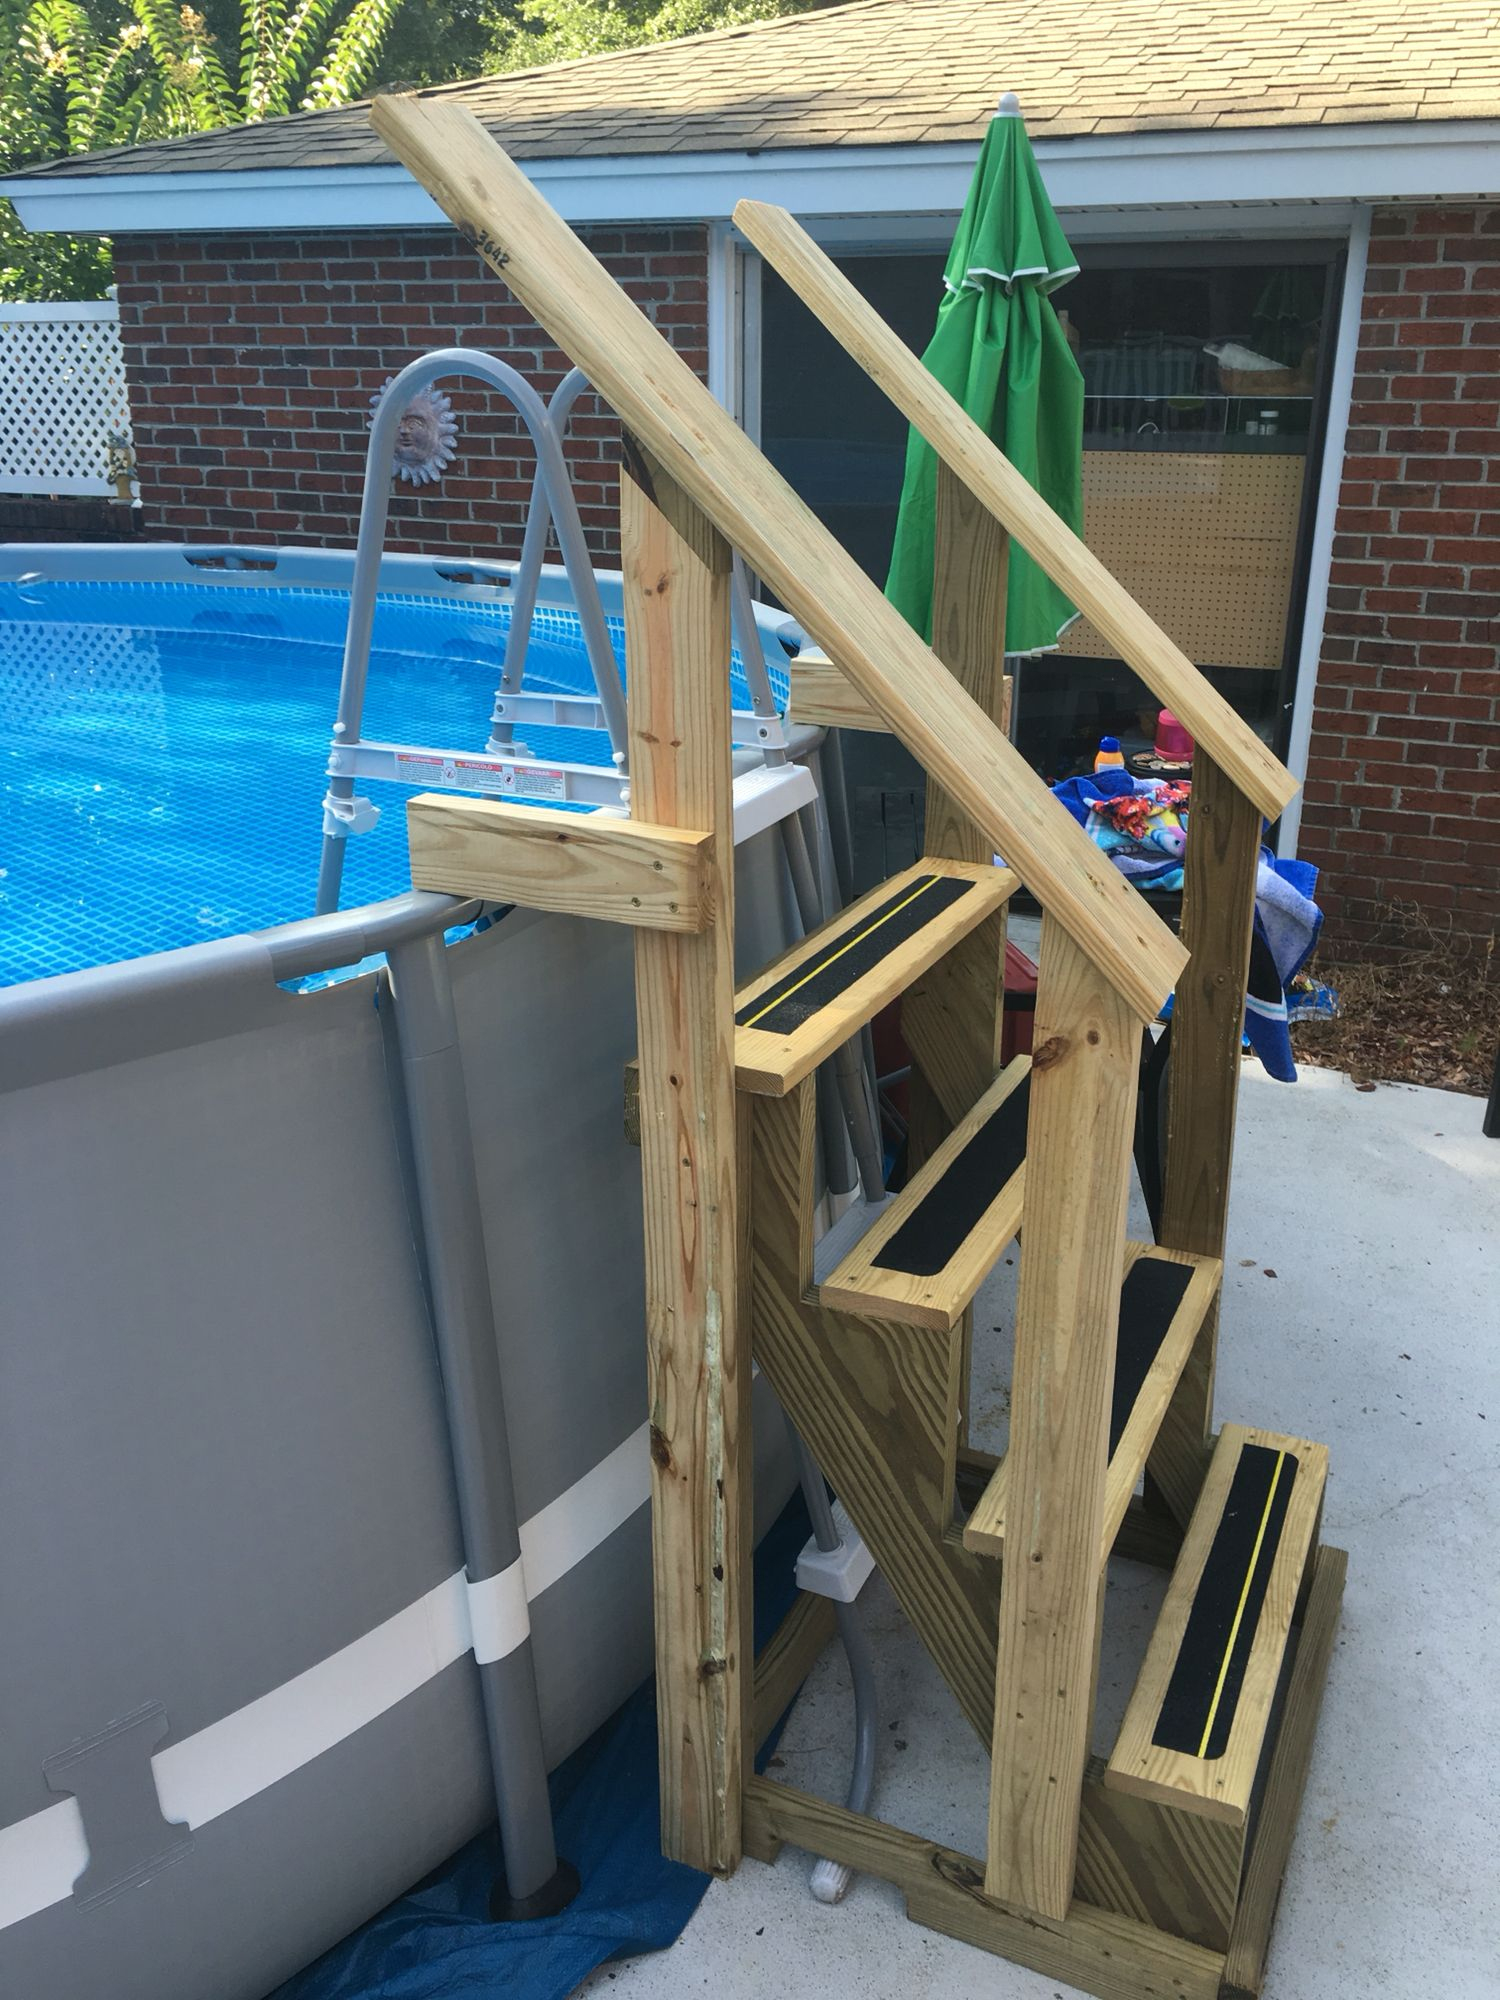 New Above Ground Pool Ladder. | Bricolage | Piscine Intex ... concernant Echelle De Piscine Intex